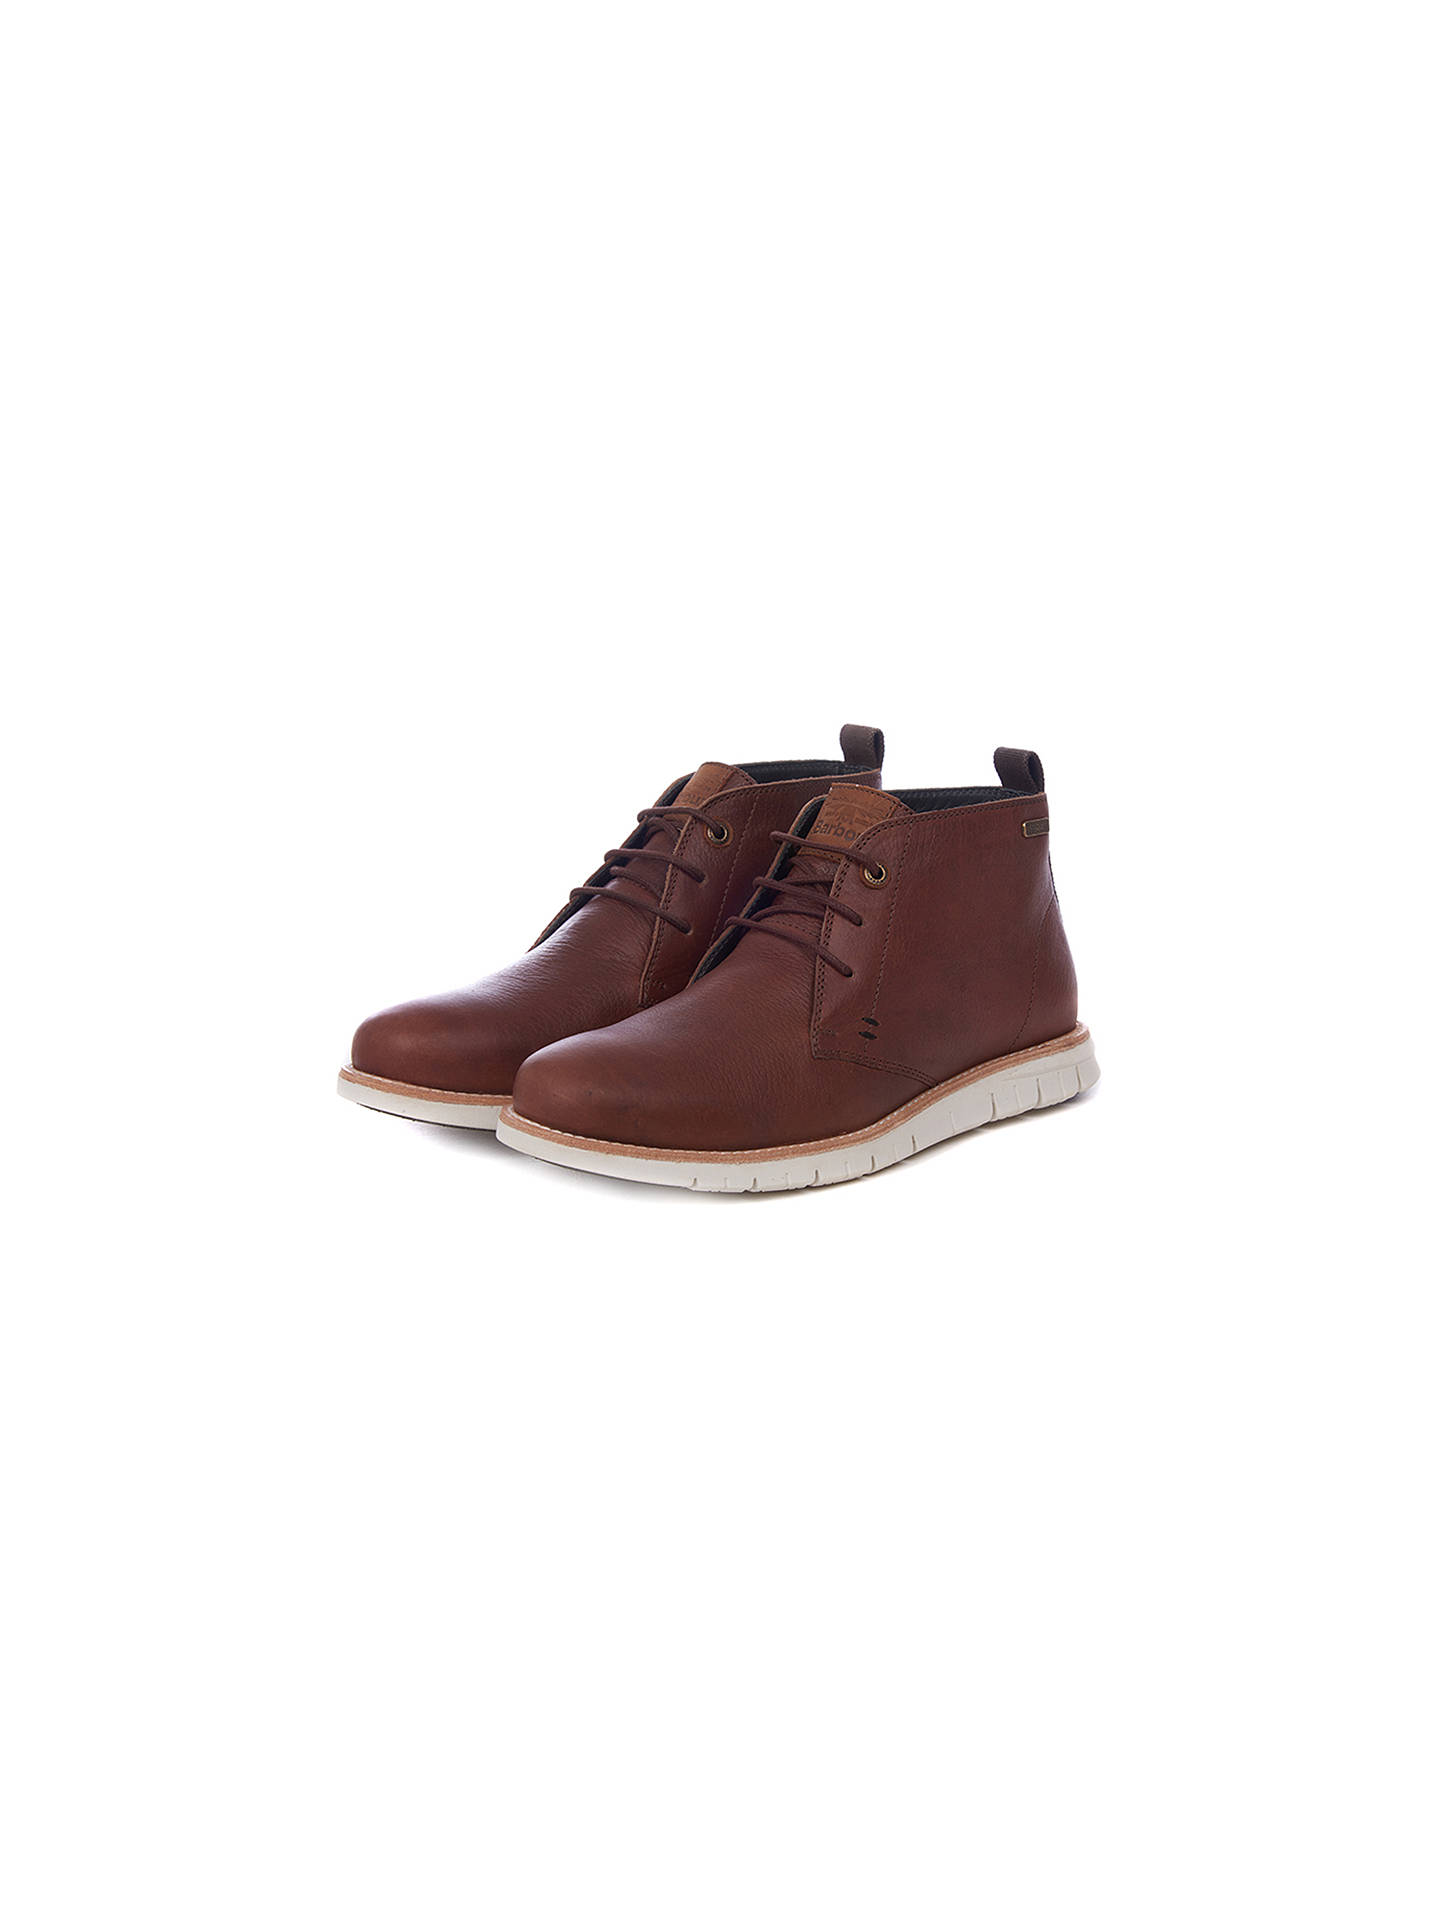 47e8e566e59 Barbour Burghley Leather Chukka Boots at John Lewis & Partners